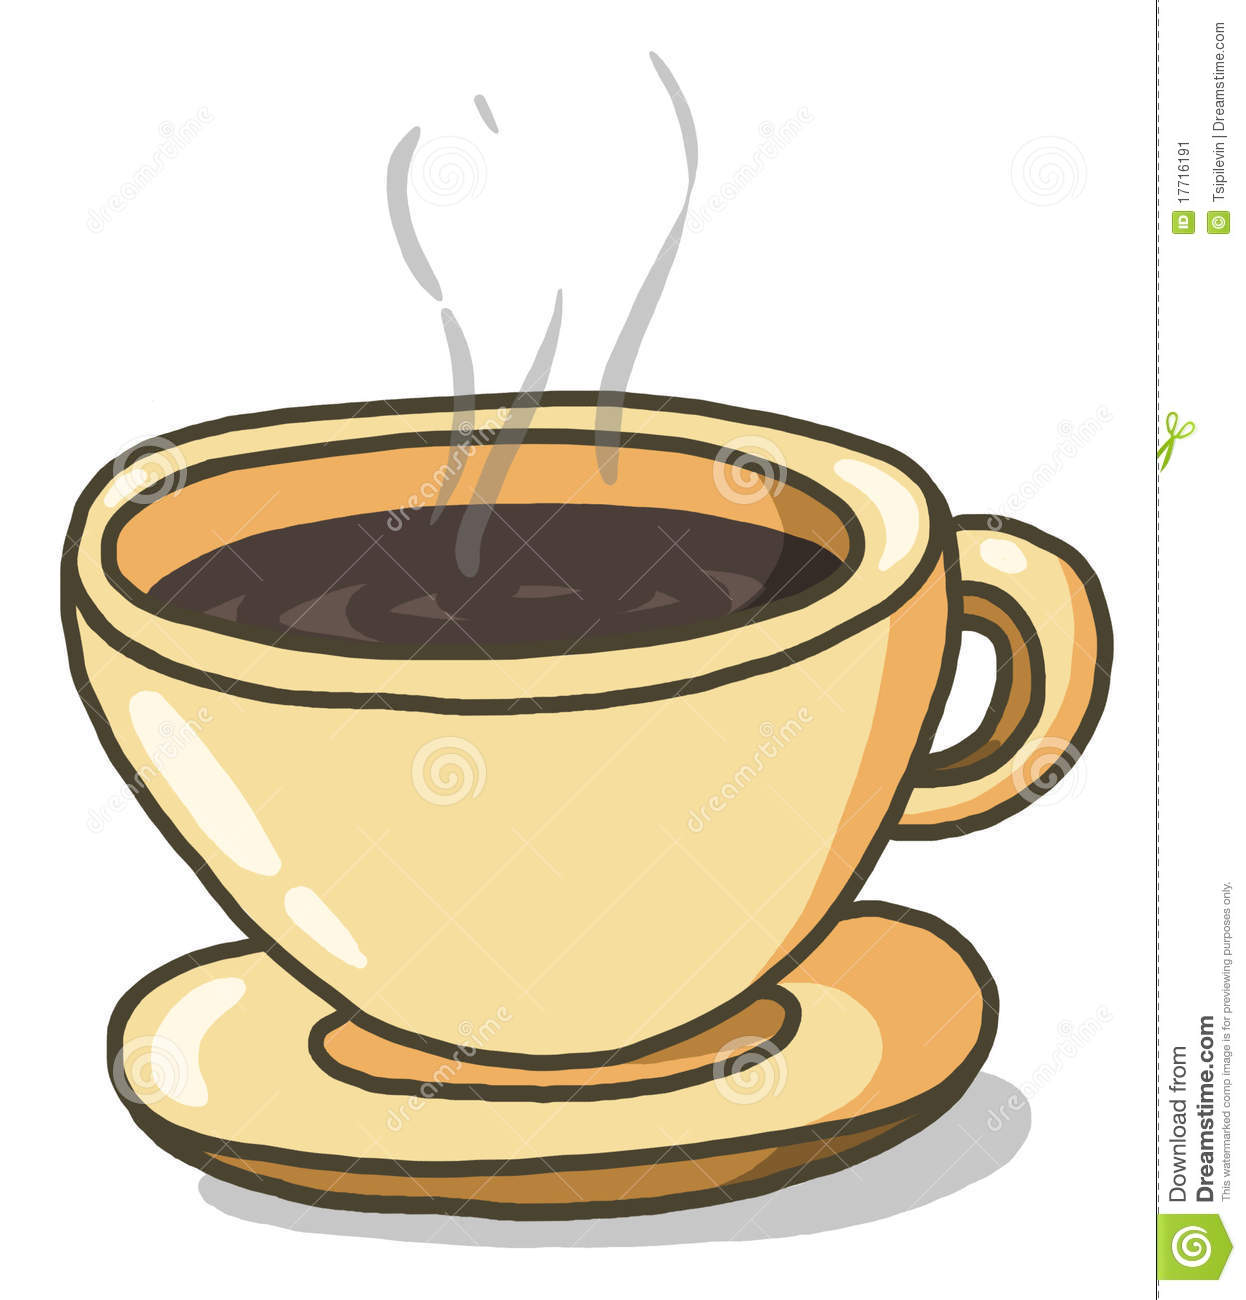 cup-coffee-illustration-17716191.jpg